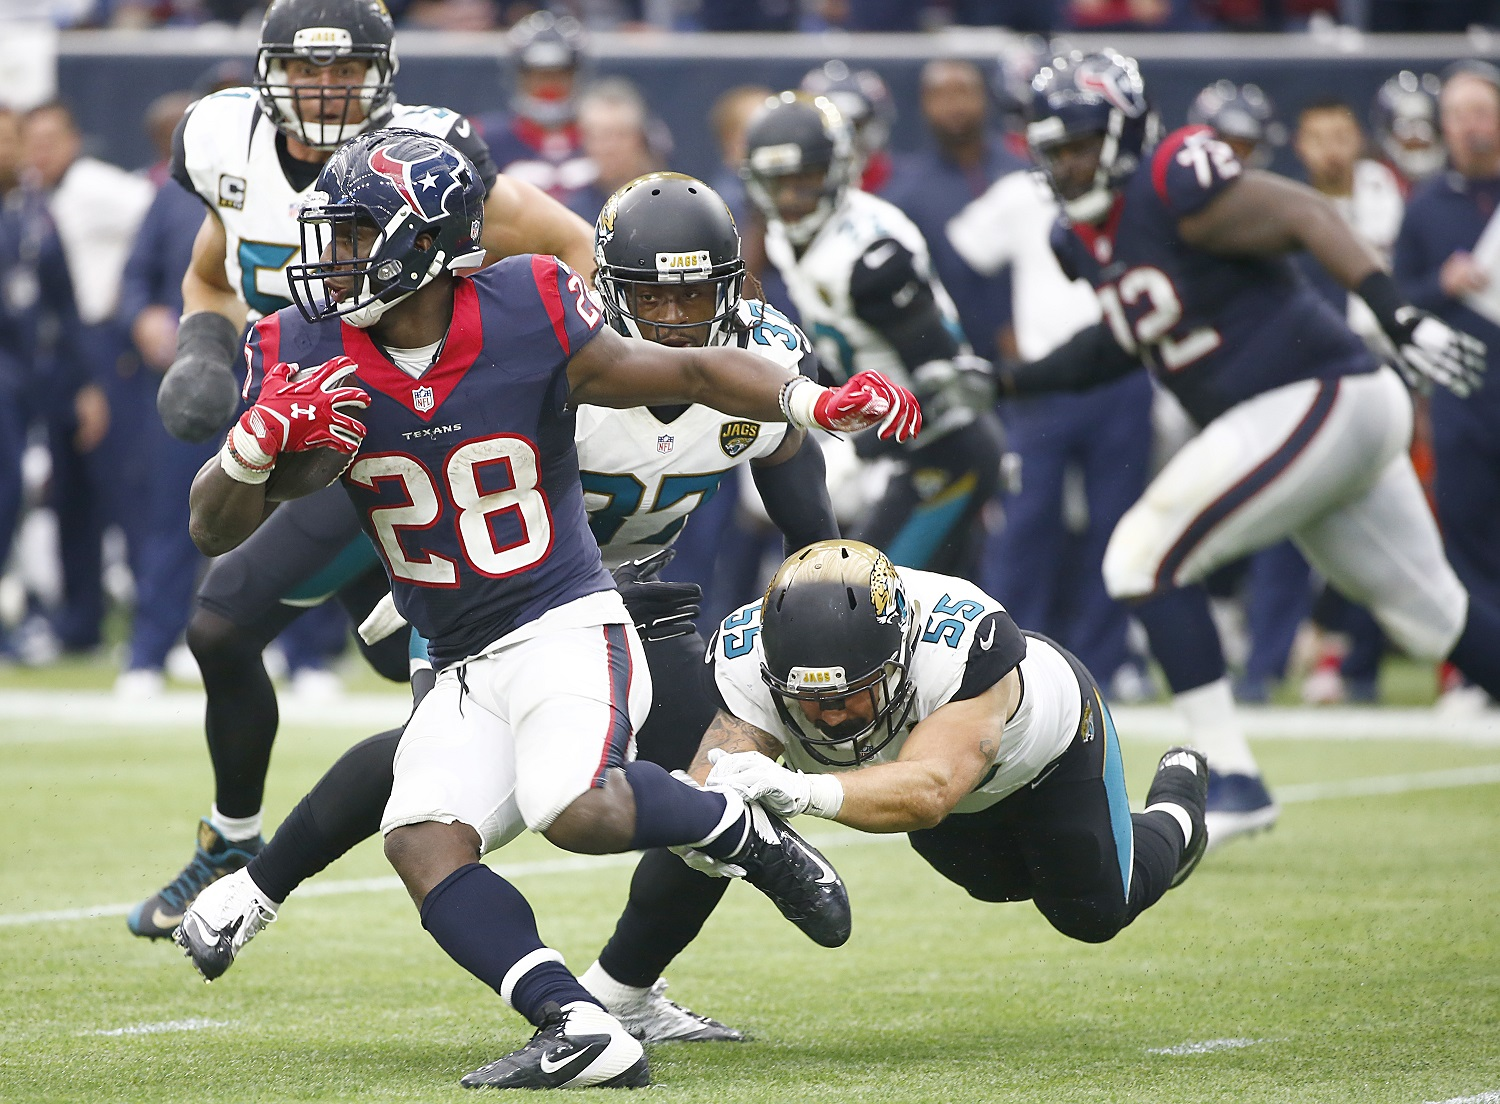 HOUSTON, TX - JANUARY 03: Alfred Blue #28 of the Houston Texans breaks the tackle of Dan Skuta #55 of the Jacksonville Jaguars on January 3, 2016 at NRG Stadium in Houston, Texas. (Photo by Scott Halleran/Getty Images)